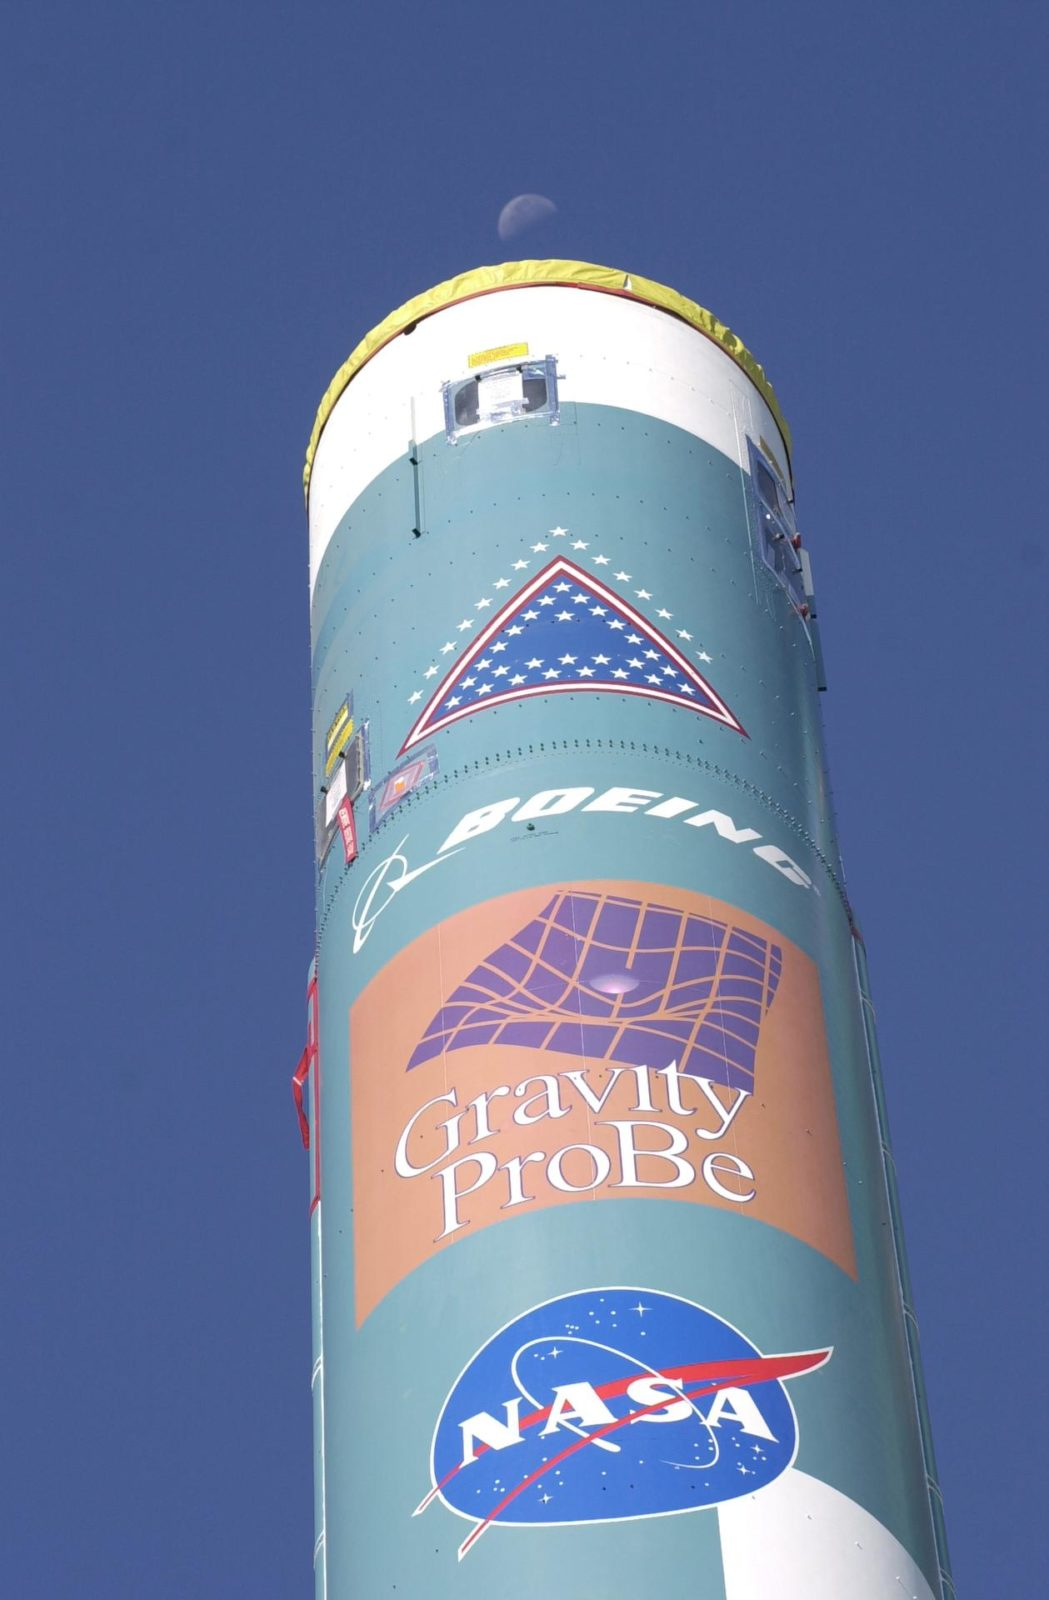 VANDENBERG AFB, CALIF. -  Logos identify the mission of this Delta II rocket that will launch the Gravity Probe B experiment, developed by Stanford University, Lockheed Martin and NASA's Marshall Space Flight Center.   The Gravity Probe B will launch a payload of four gyroscopes into low-Earth polar orbit to test two extraordinary predictions of Albert Einstein's general theory of relativity: the geodetic effect (how space and time are warped by the presence of the Earth) and frame dragging (how Earth's rotation drags space and time around with it). Once in orbit, for 18 months each gyroscope's spin axis will be monitored as it travels through local spacetime, observing and measuring these effects. The targeted launch date is Dec. 6, 2003.